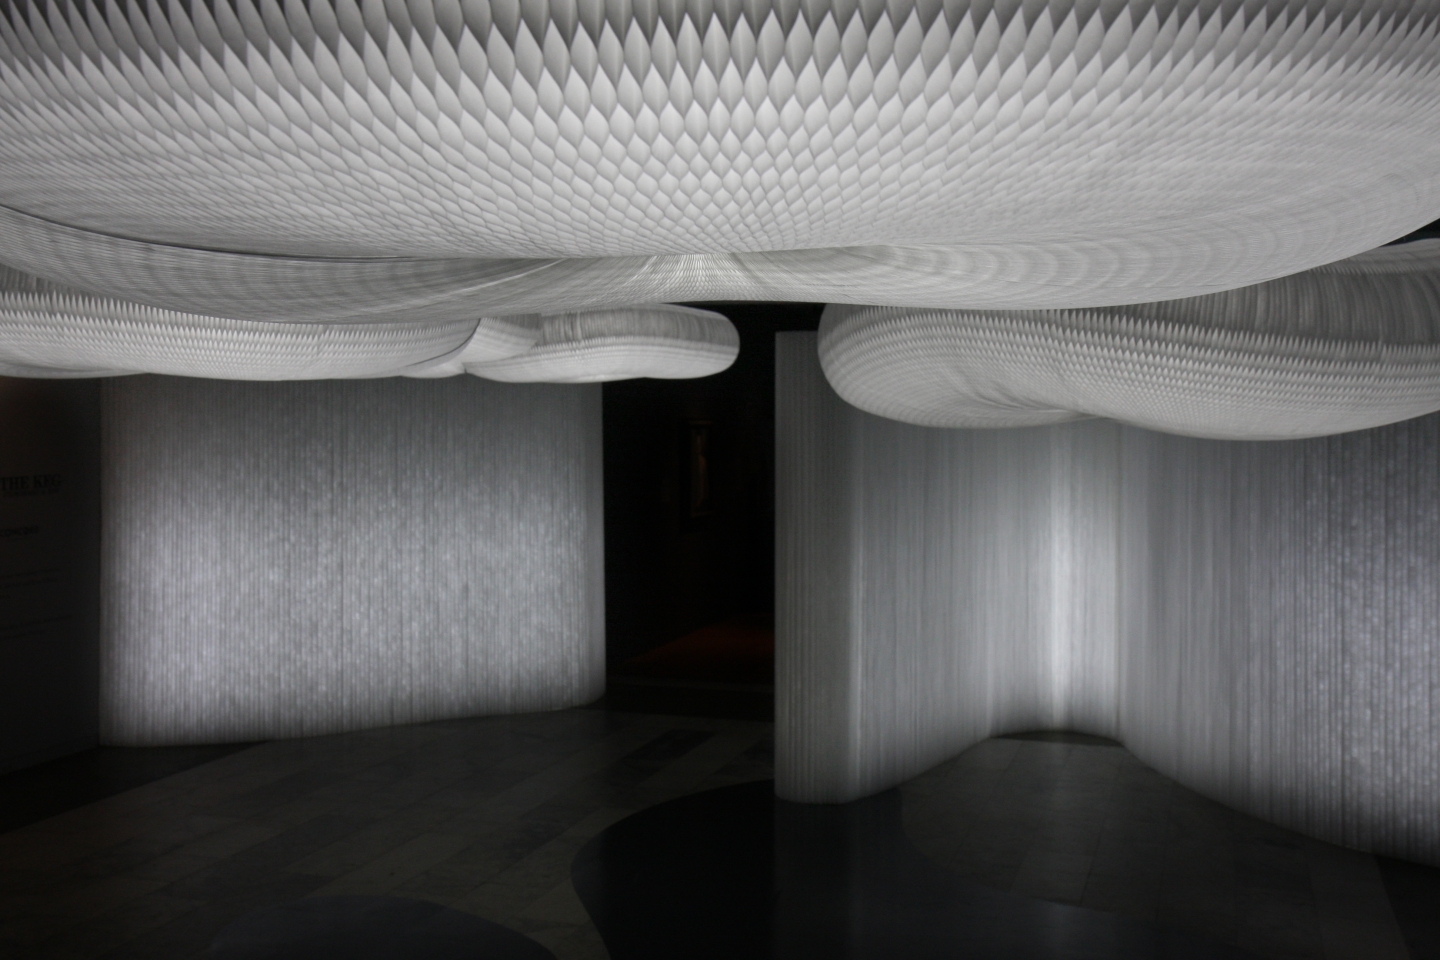 molo white textile softwall + LED and cloud softlight at the surrealist exhibition at the Vancouver Art Gallery